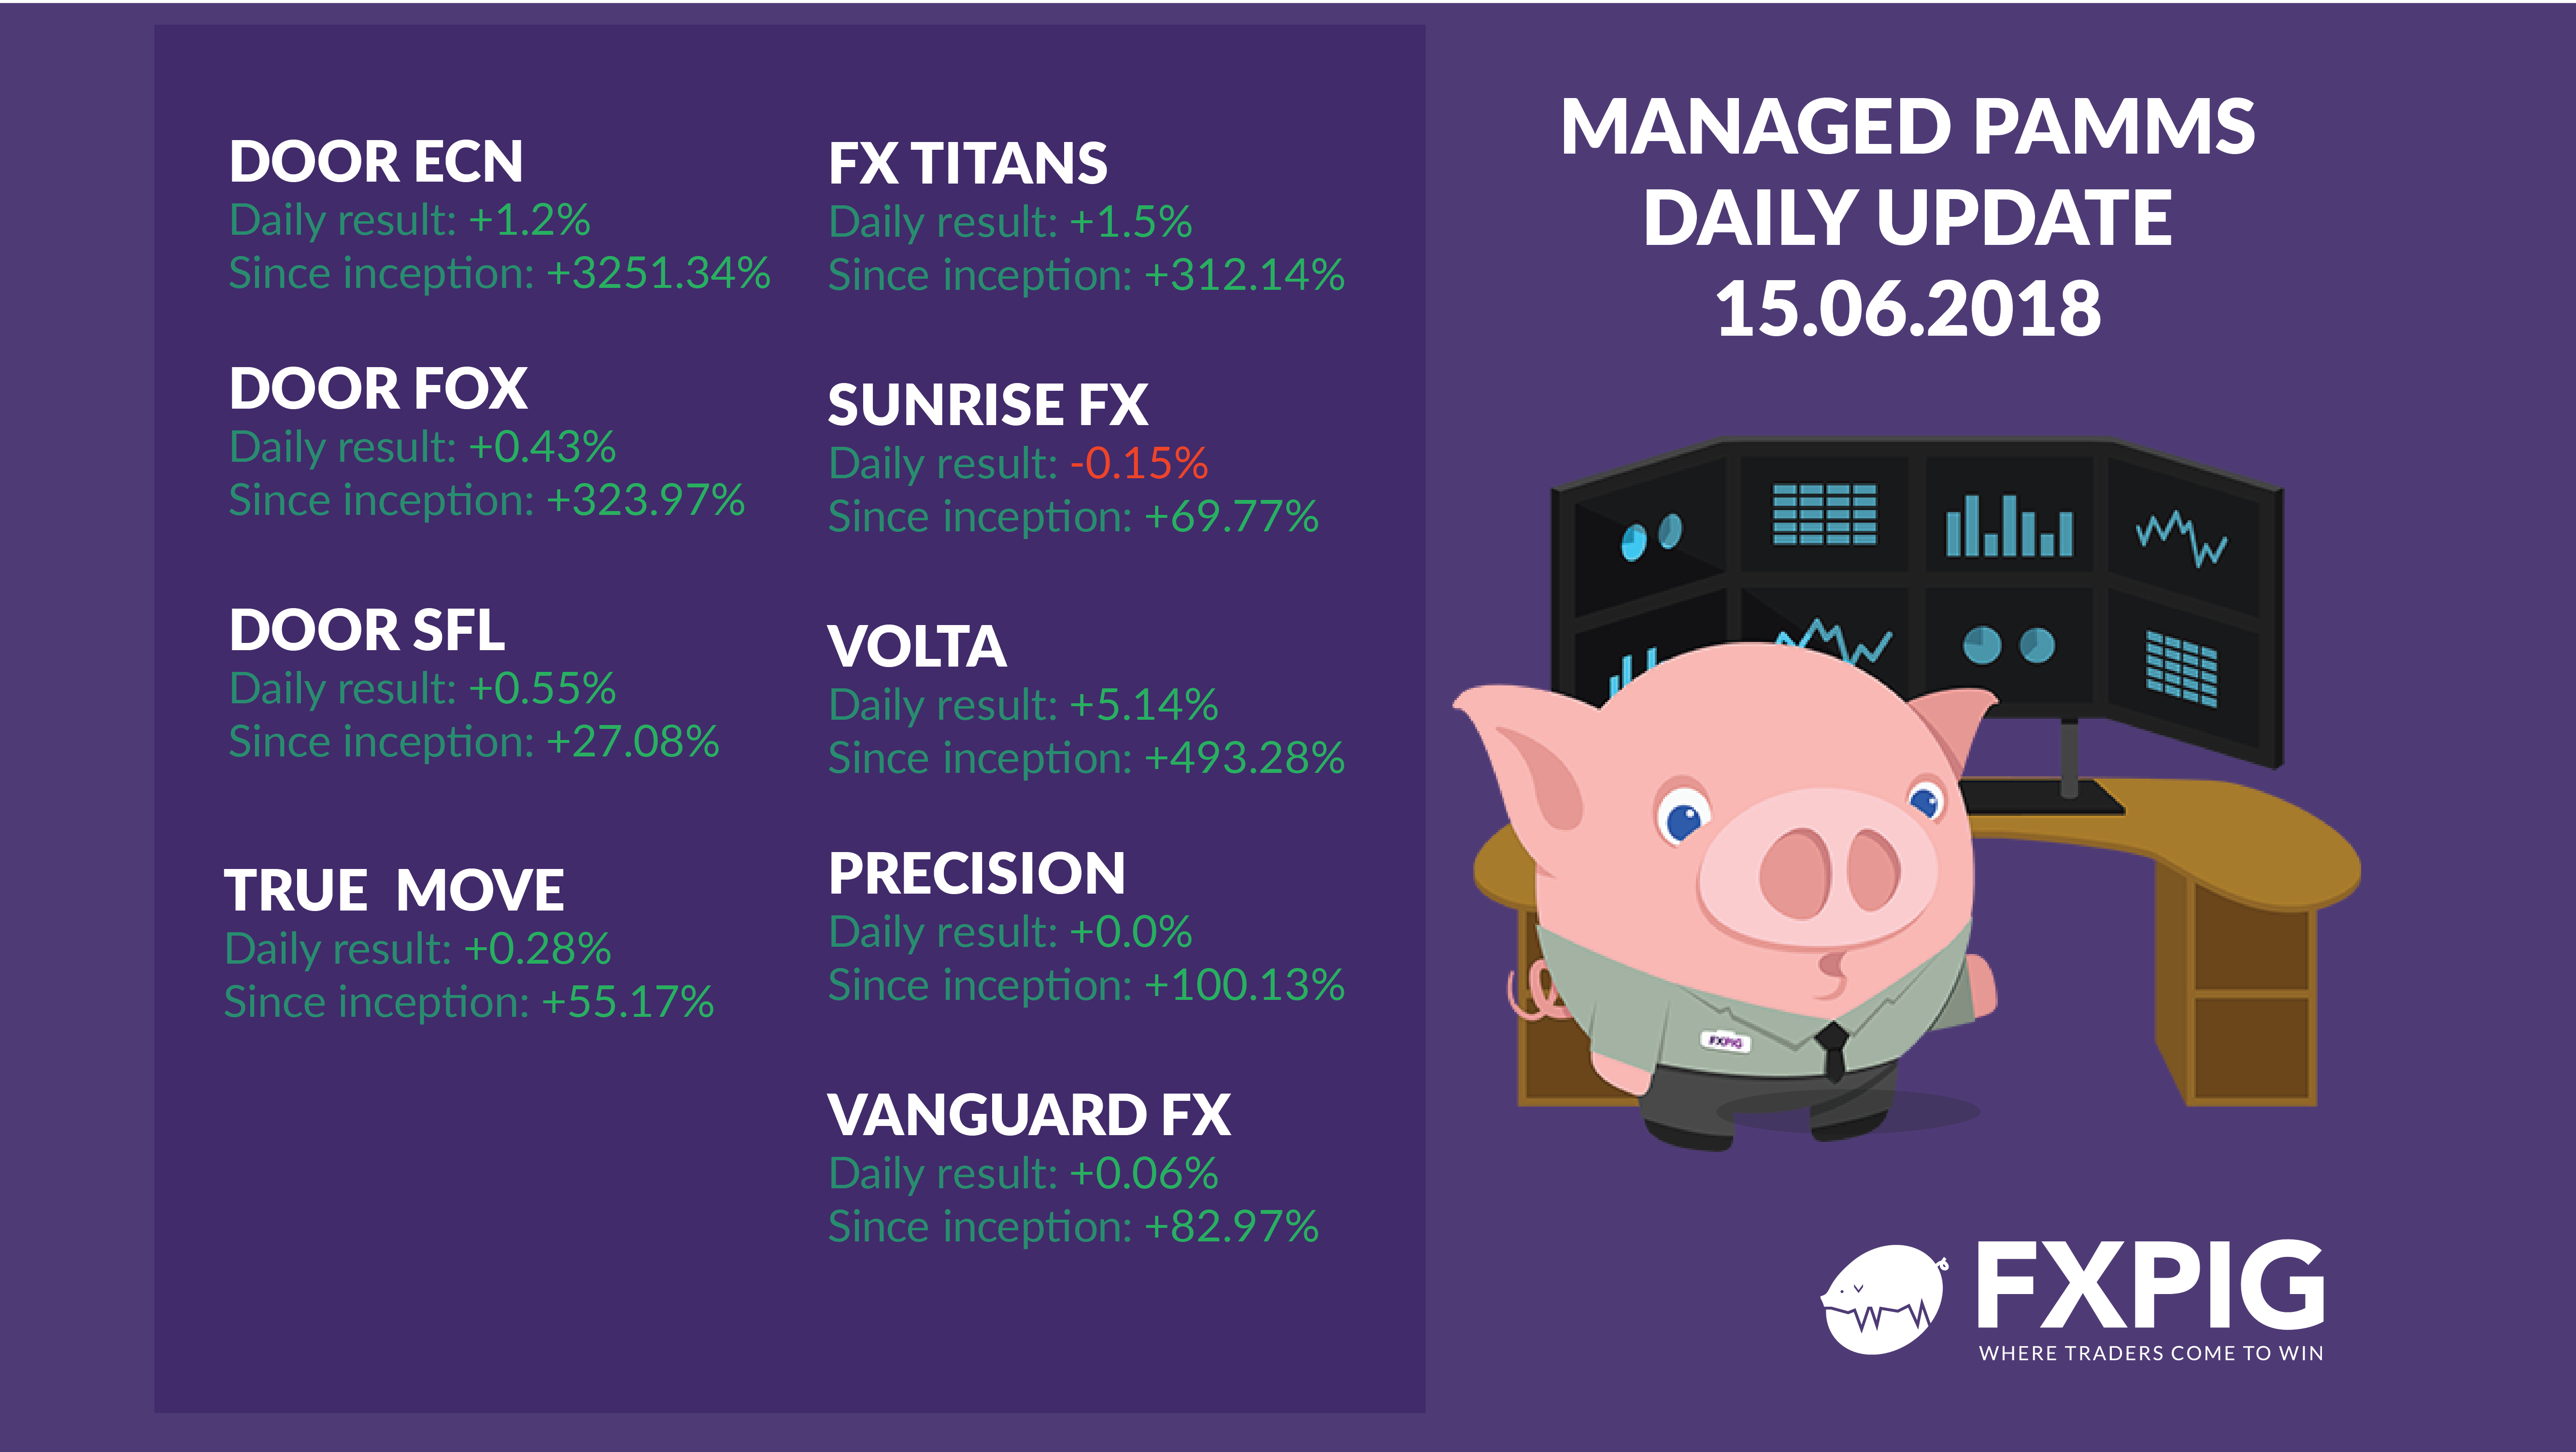 FOREX_Managed-daily-results-1506_FXPIG